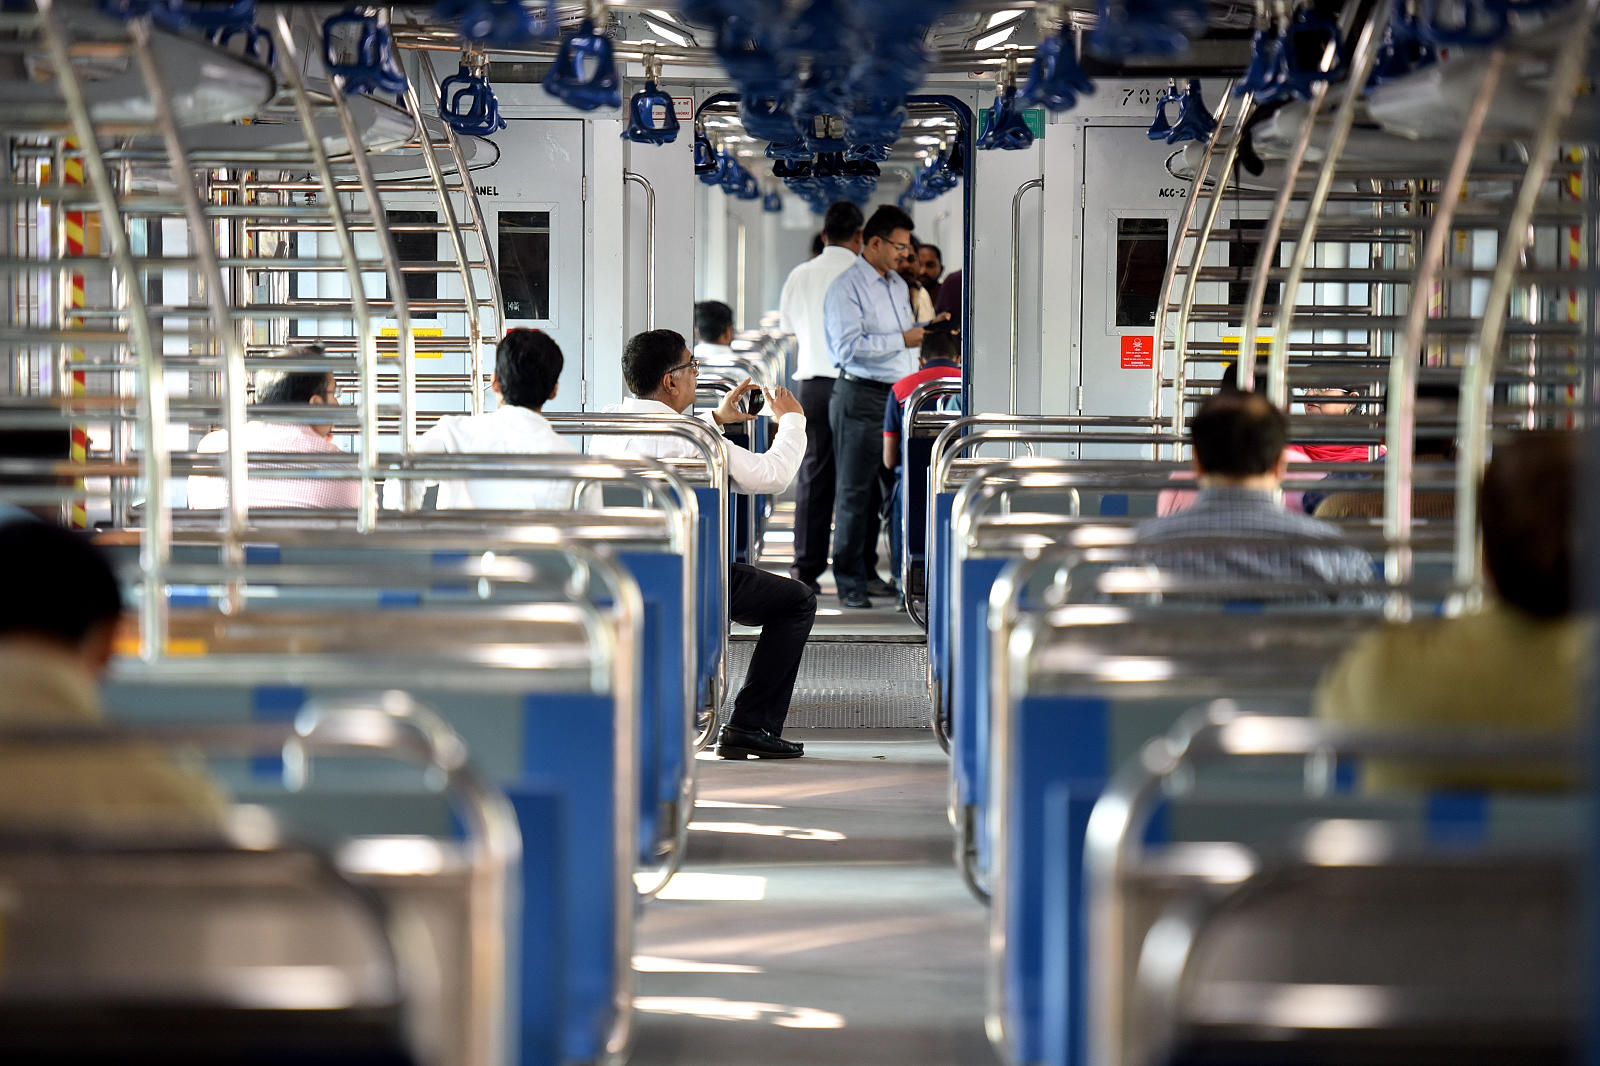 Watch: Western Railway will soon have AC and non-AC rakes in the same train